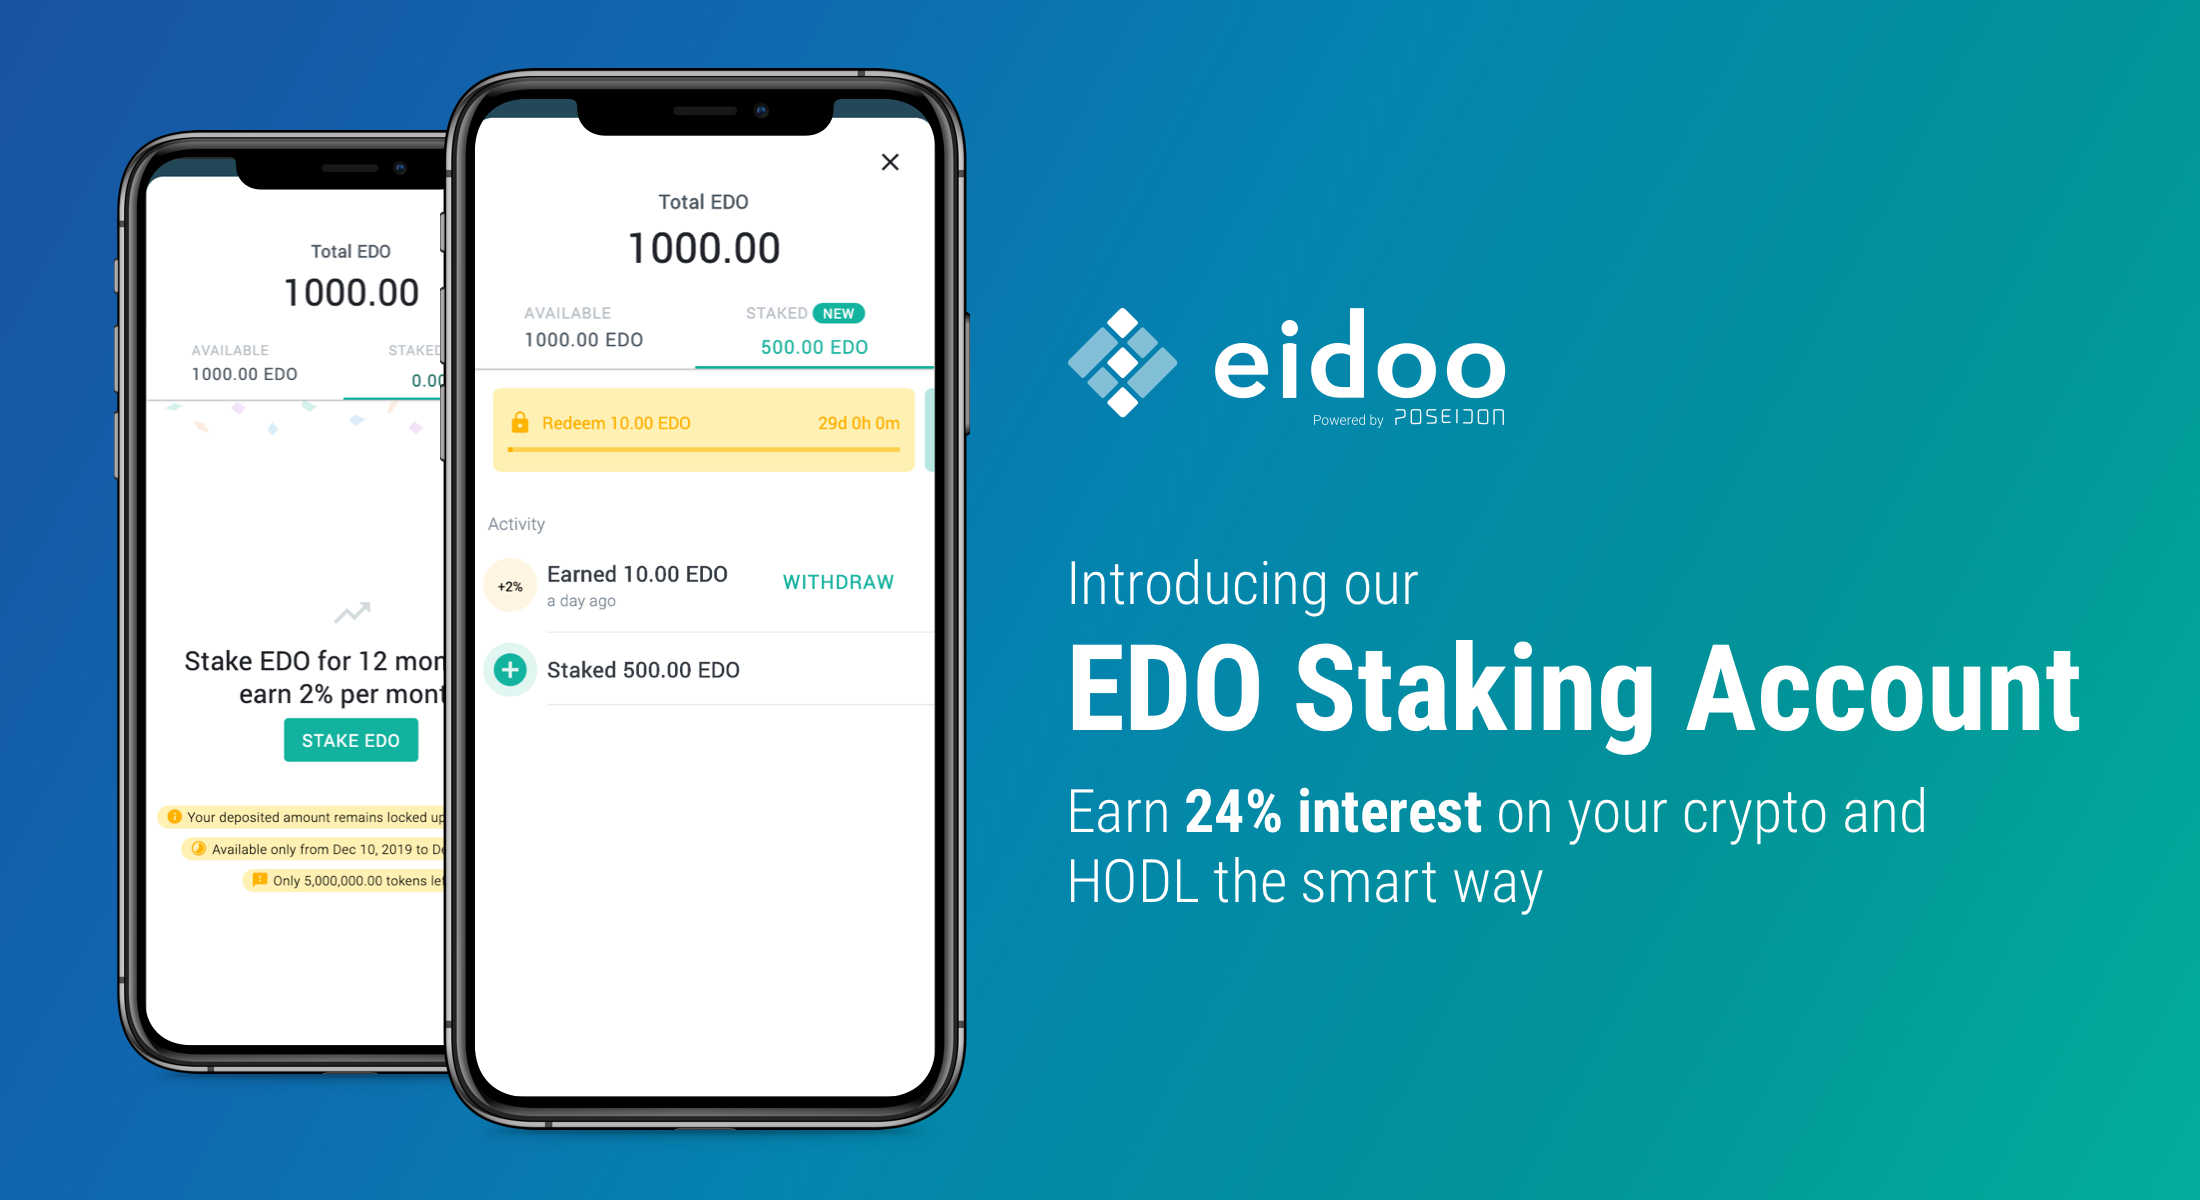 Introducing the EDO Staking Account: earn interest on your crypto